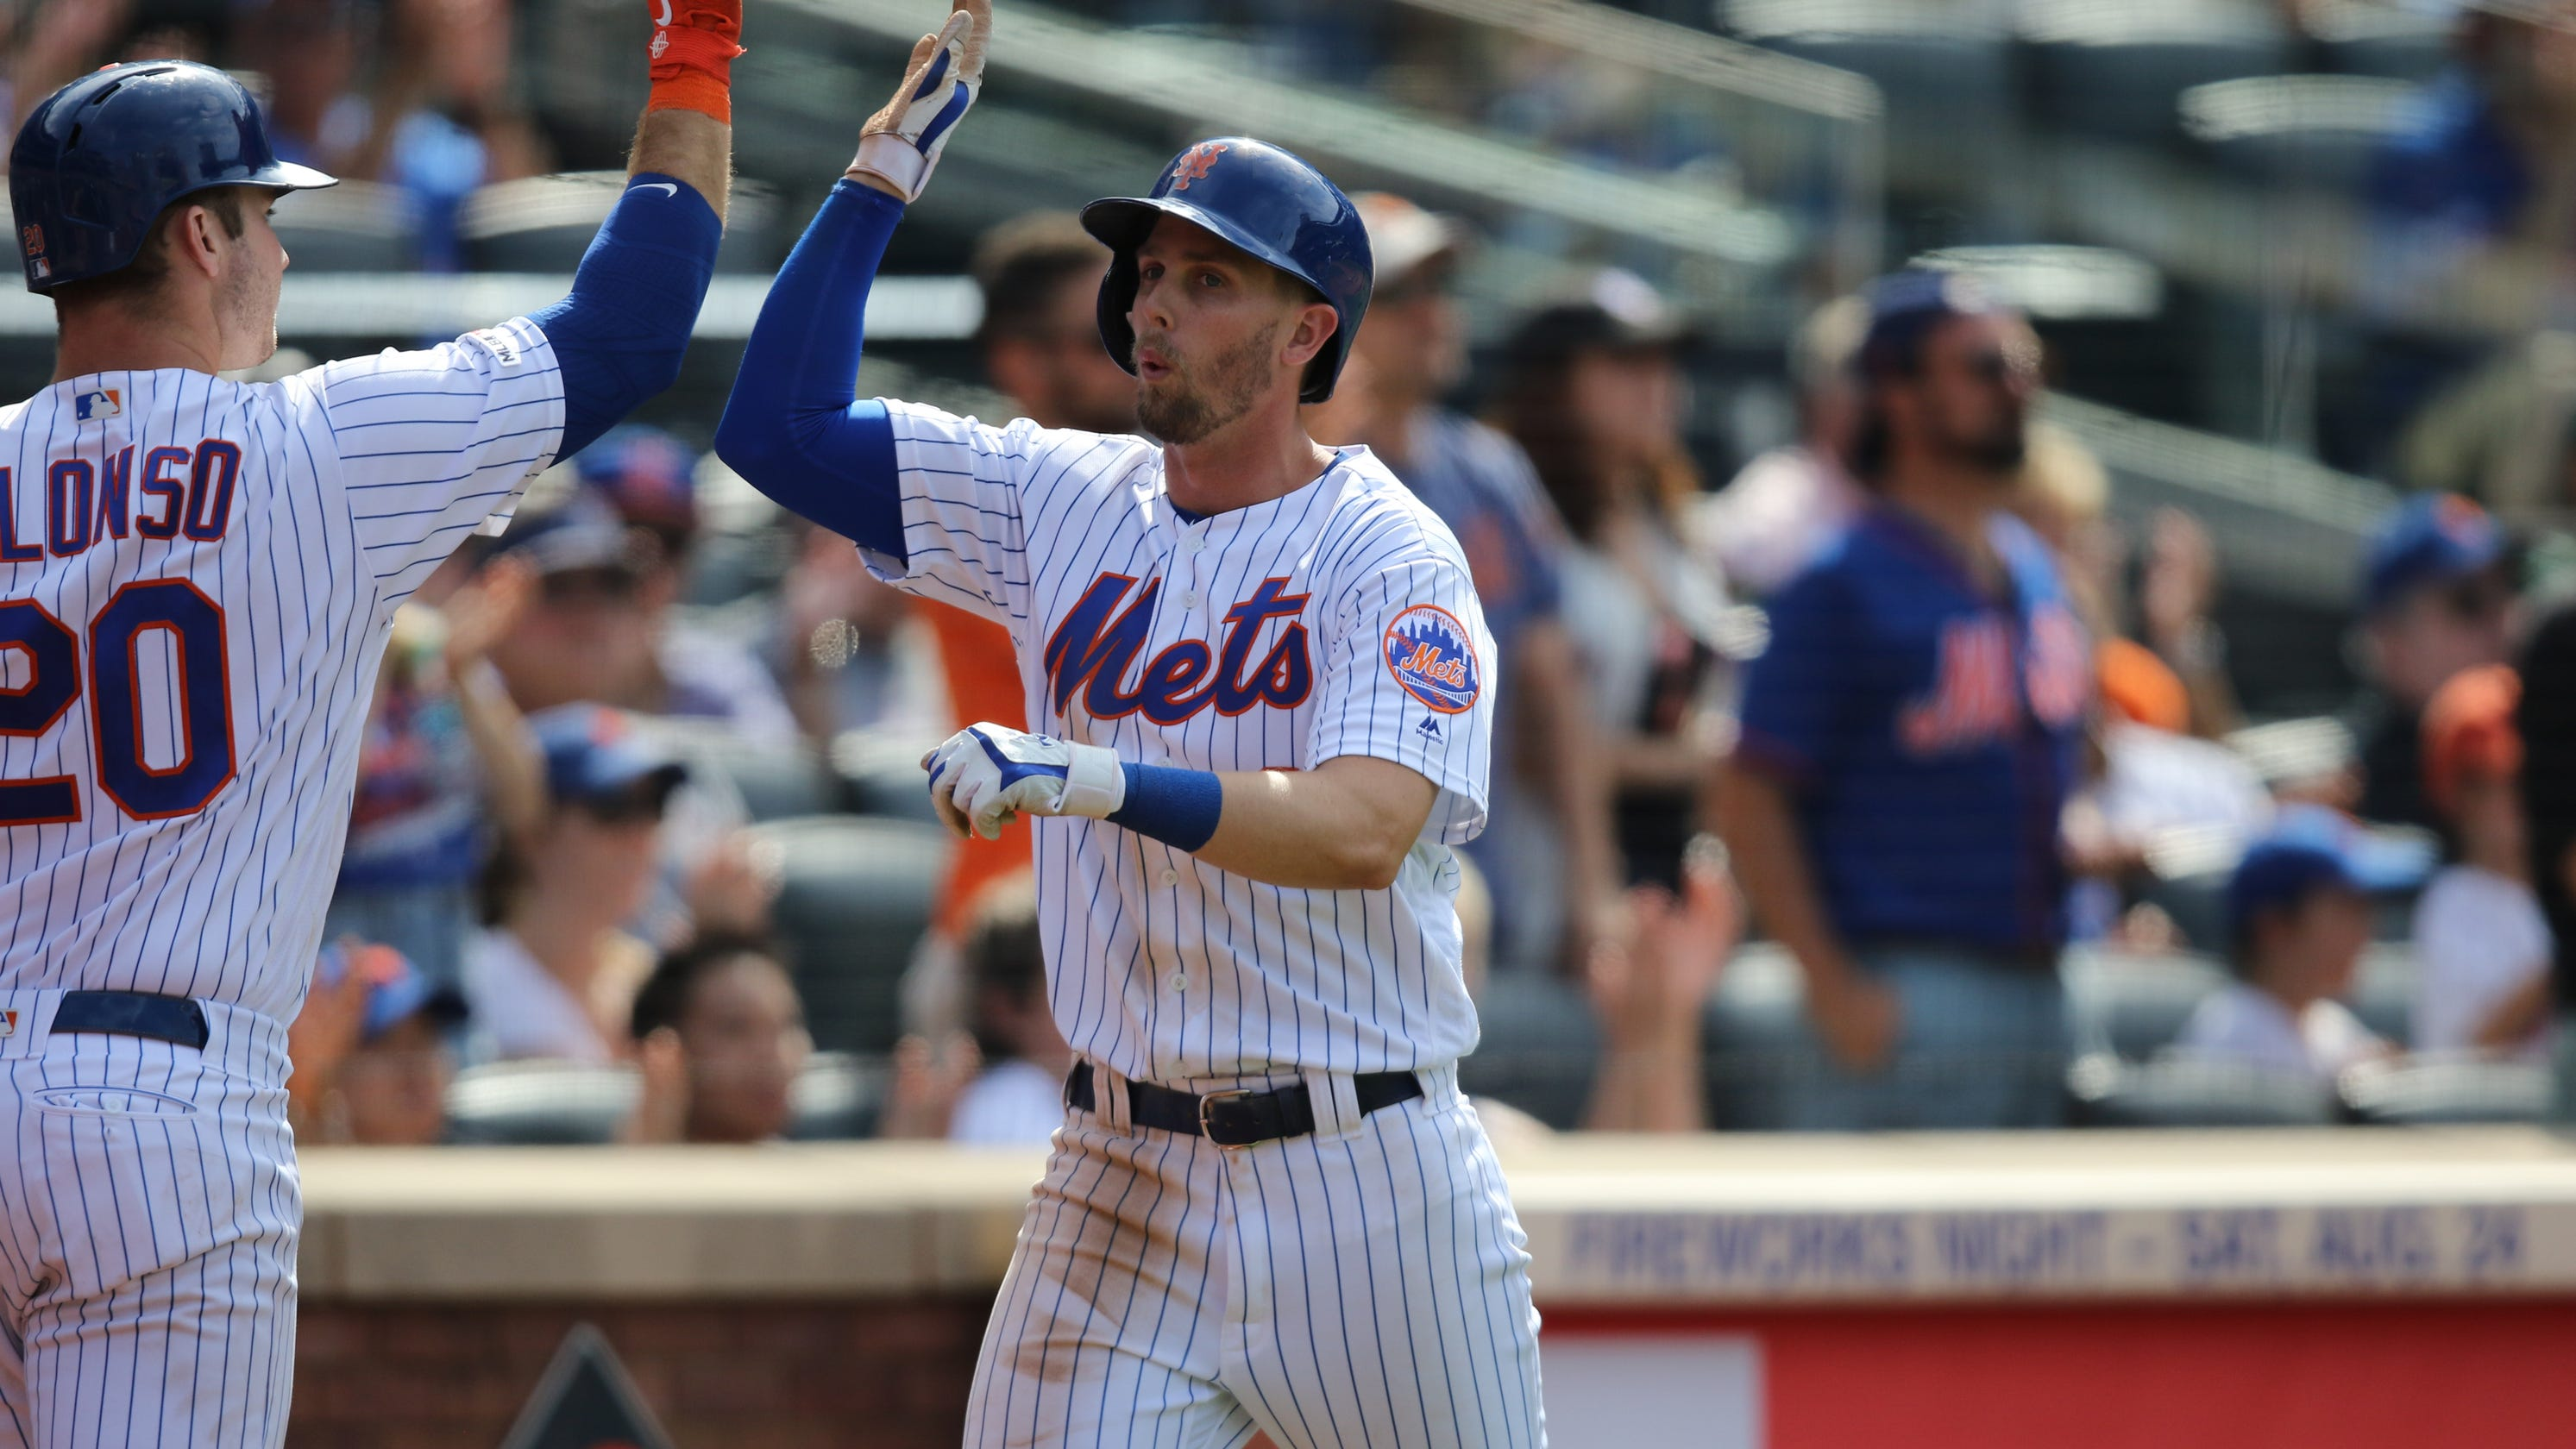 NY Mets schedule 2020: Here are the highlights, dates to know